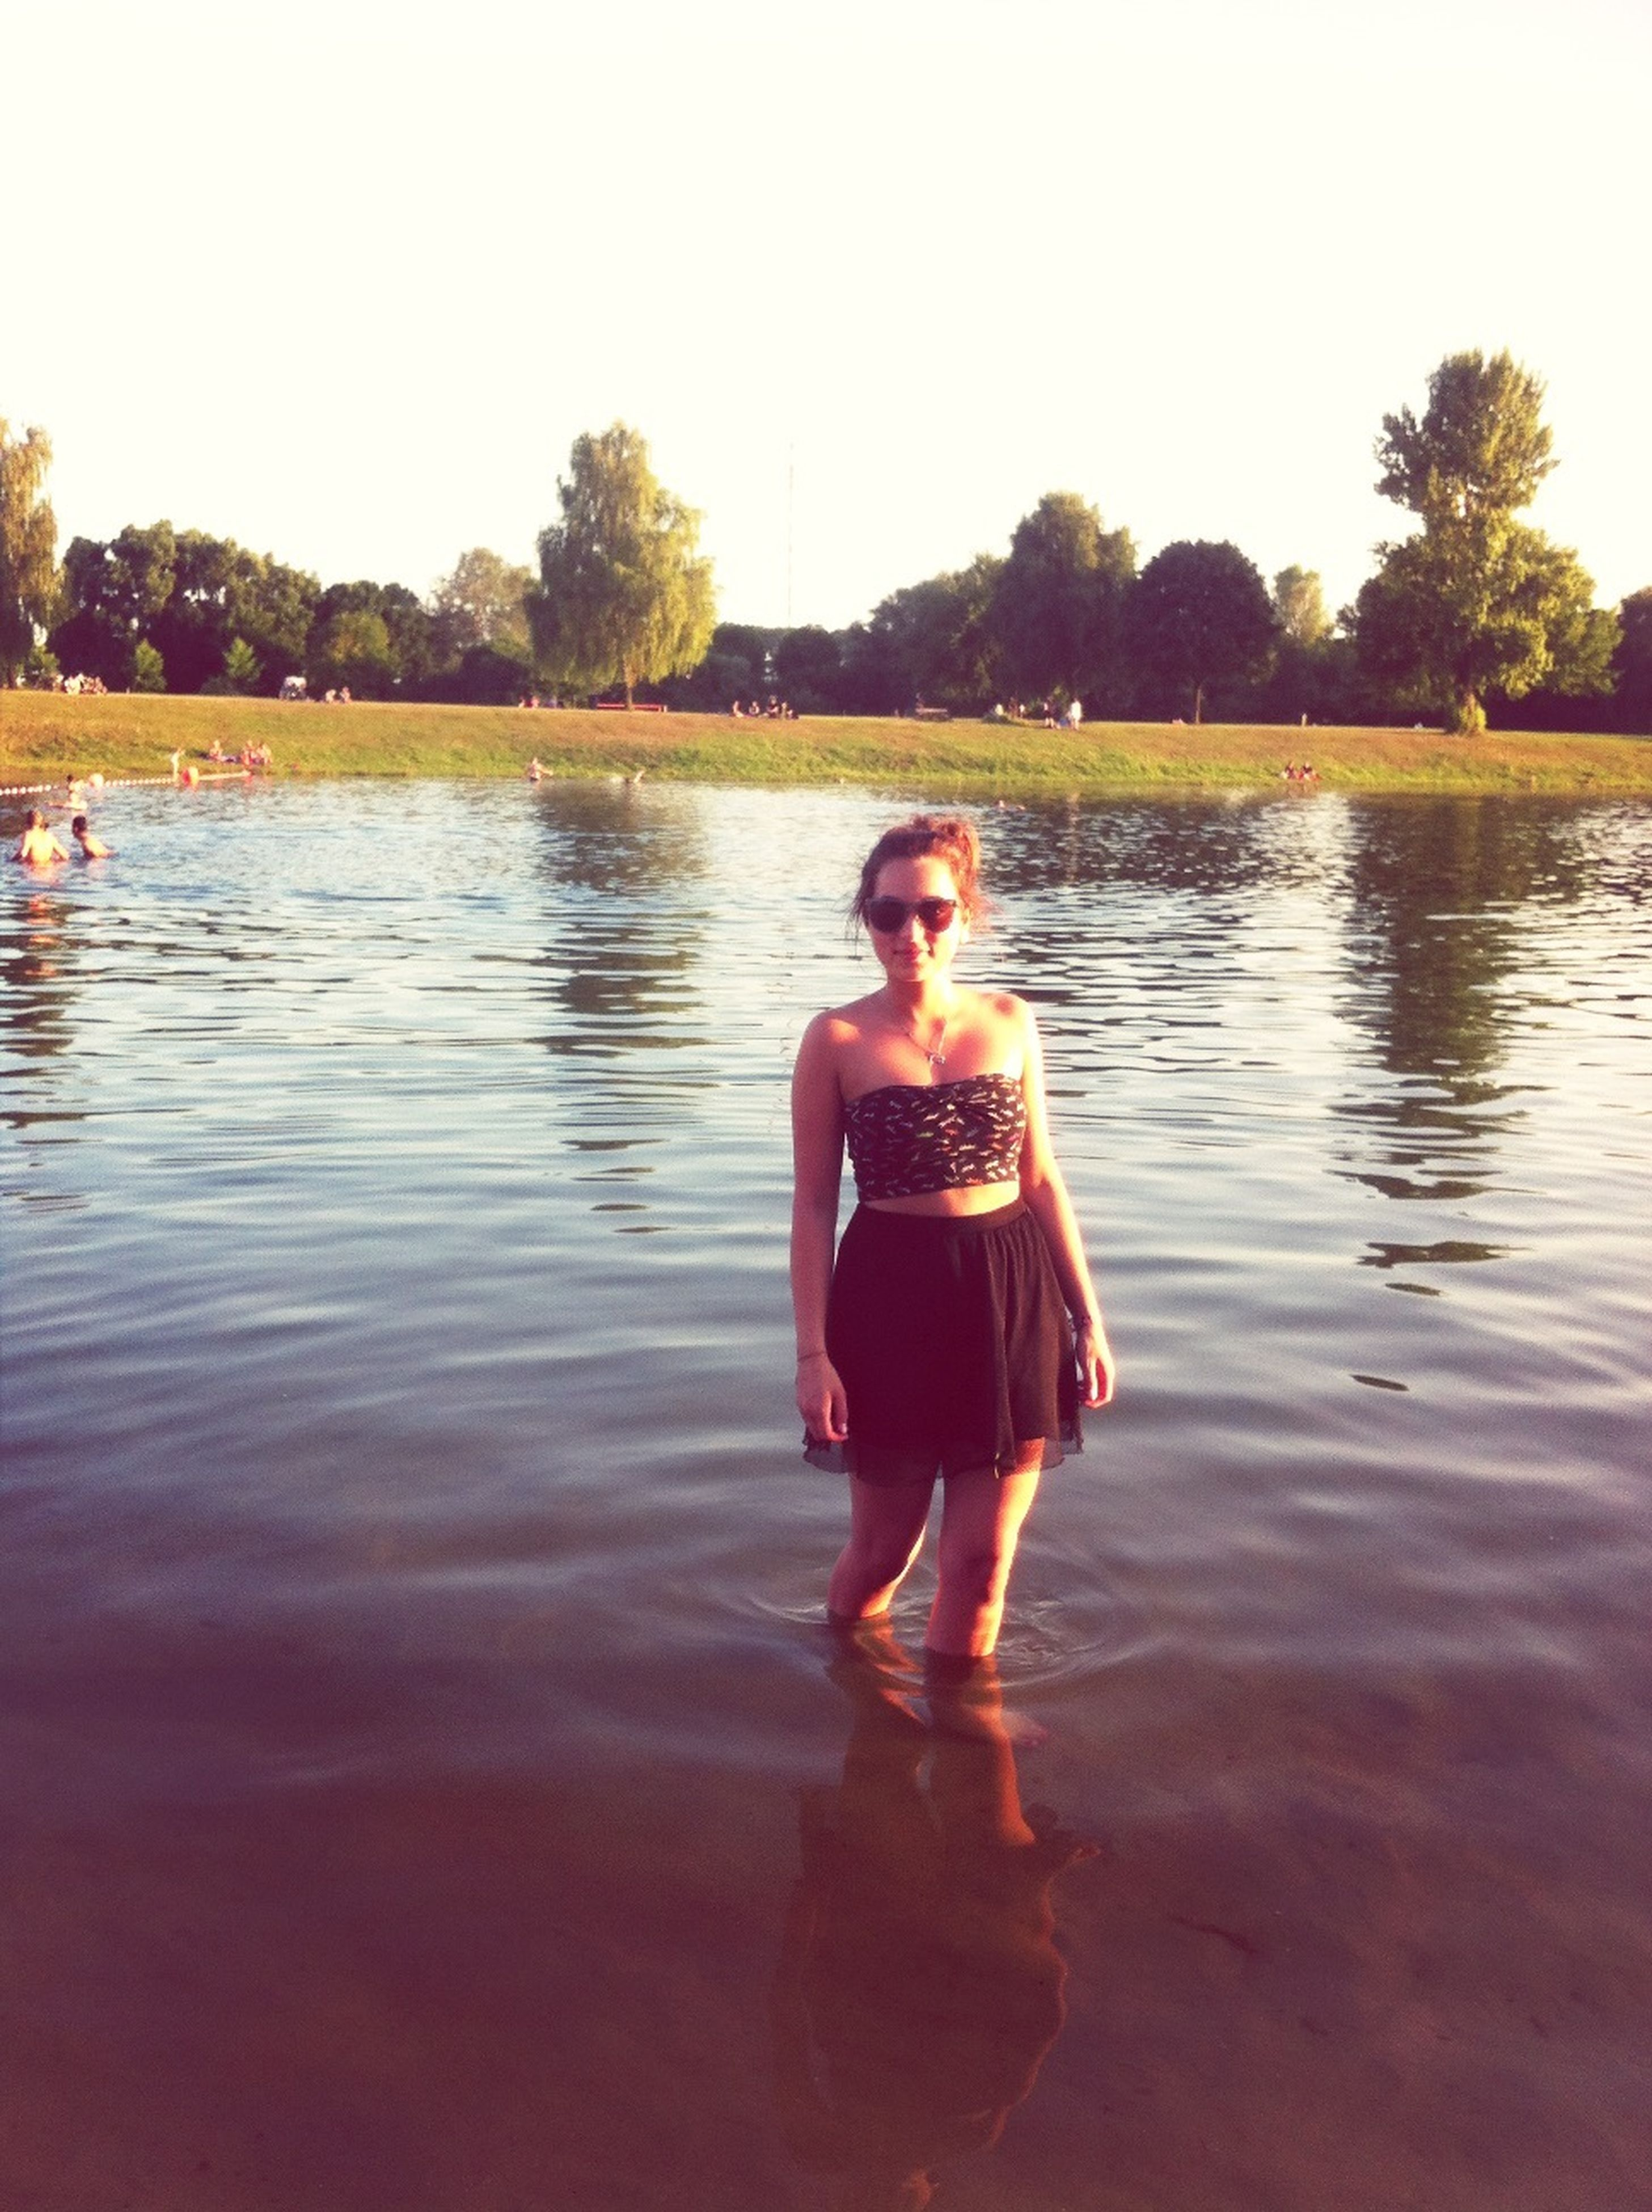 water, lifestyles, person, leisure activity, young adult, lake, full length, casual clothing, waterfront, tree, reflection, looking at camera, portrait, river, vacations, young women, enjoyment, standing